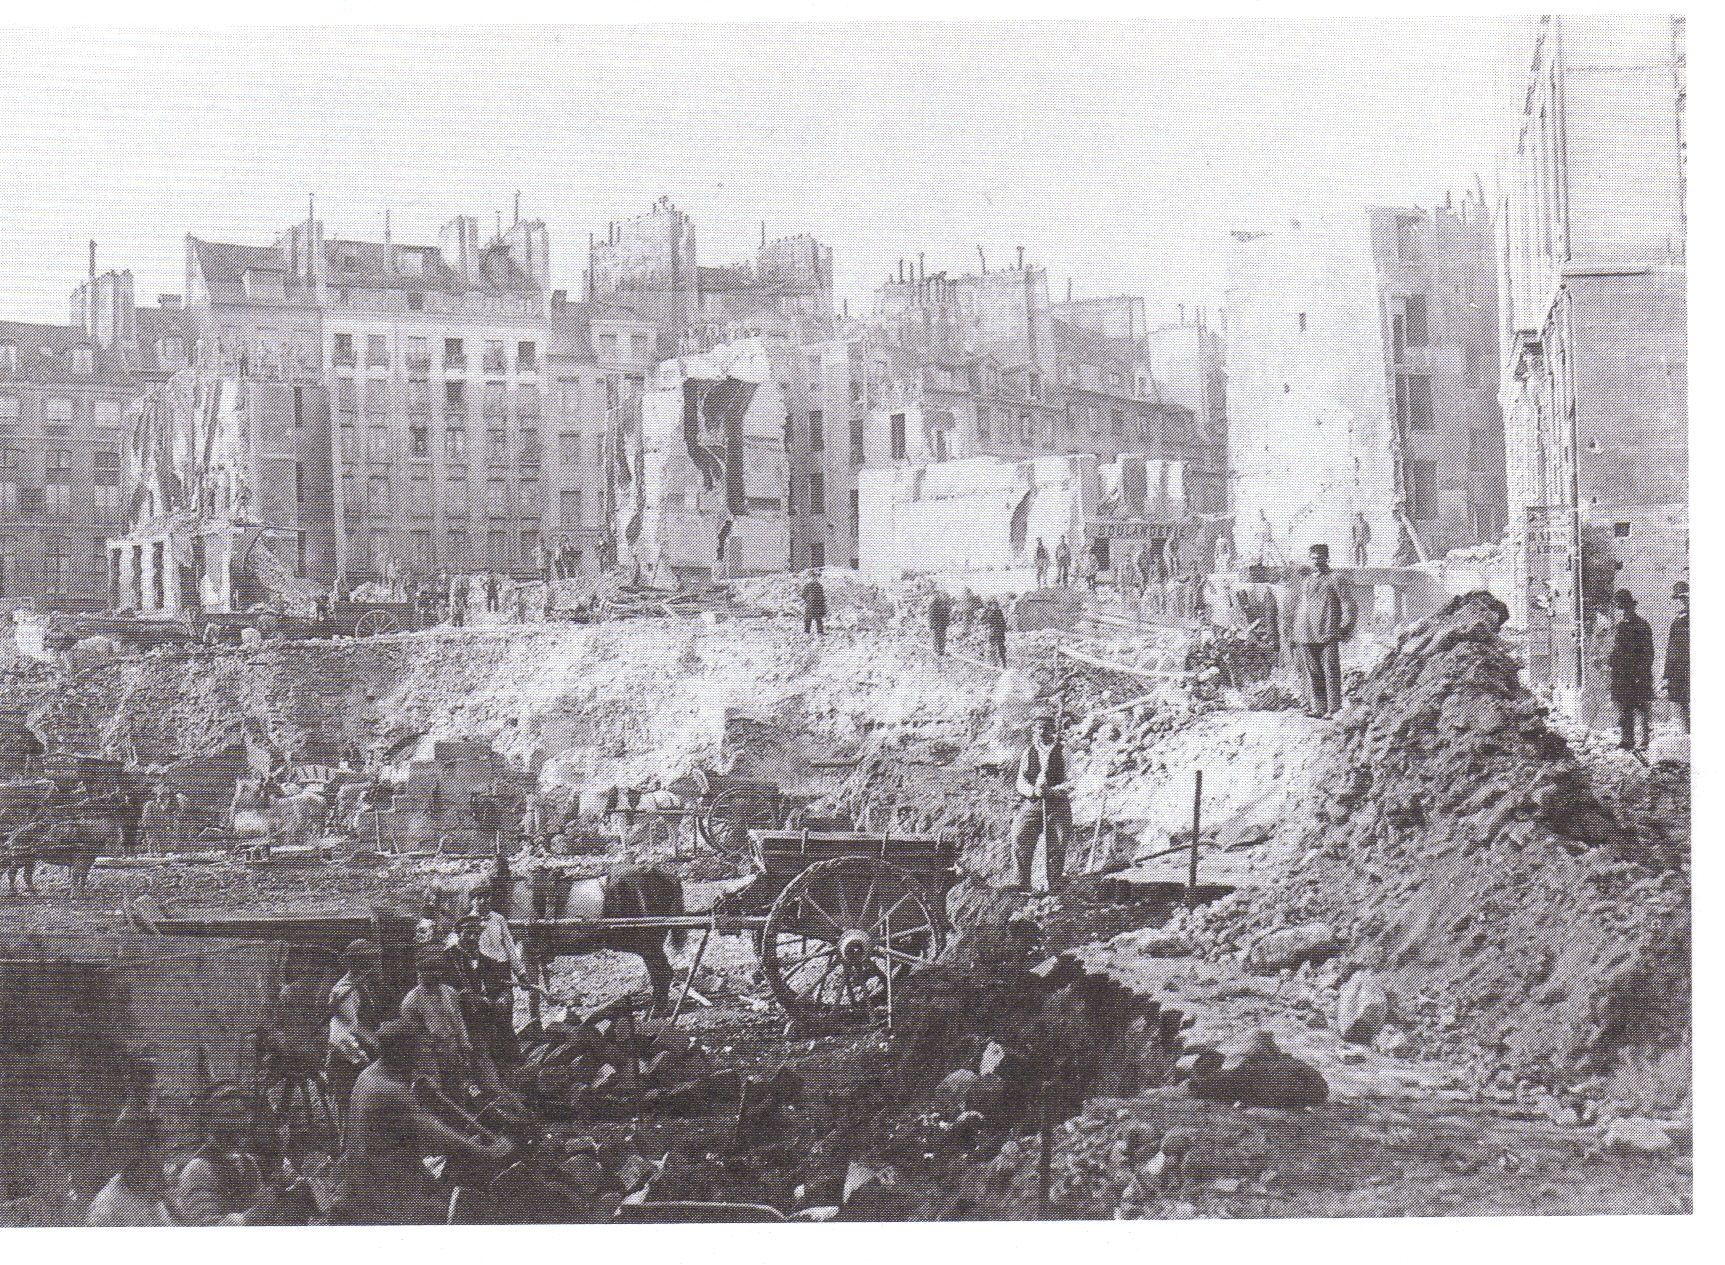 removal of buildings and hill